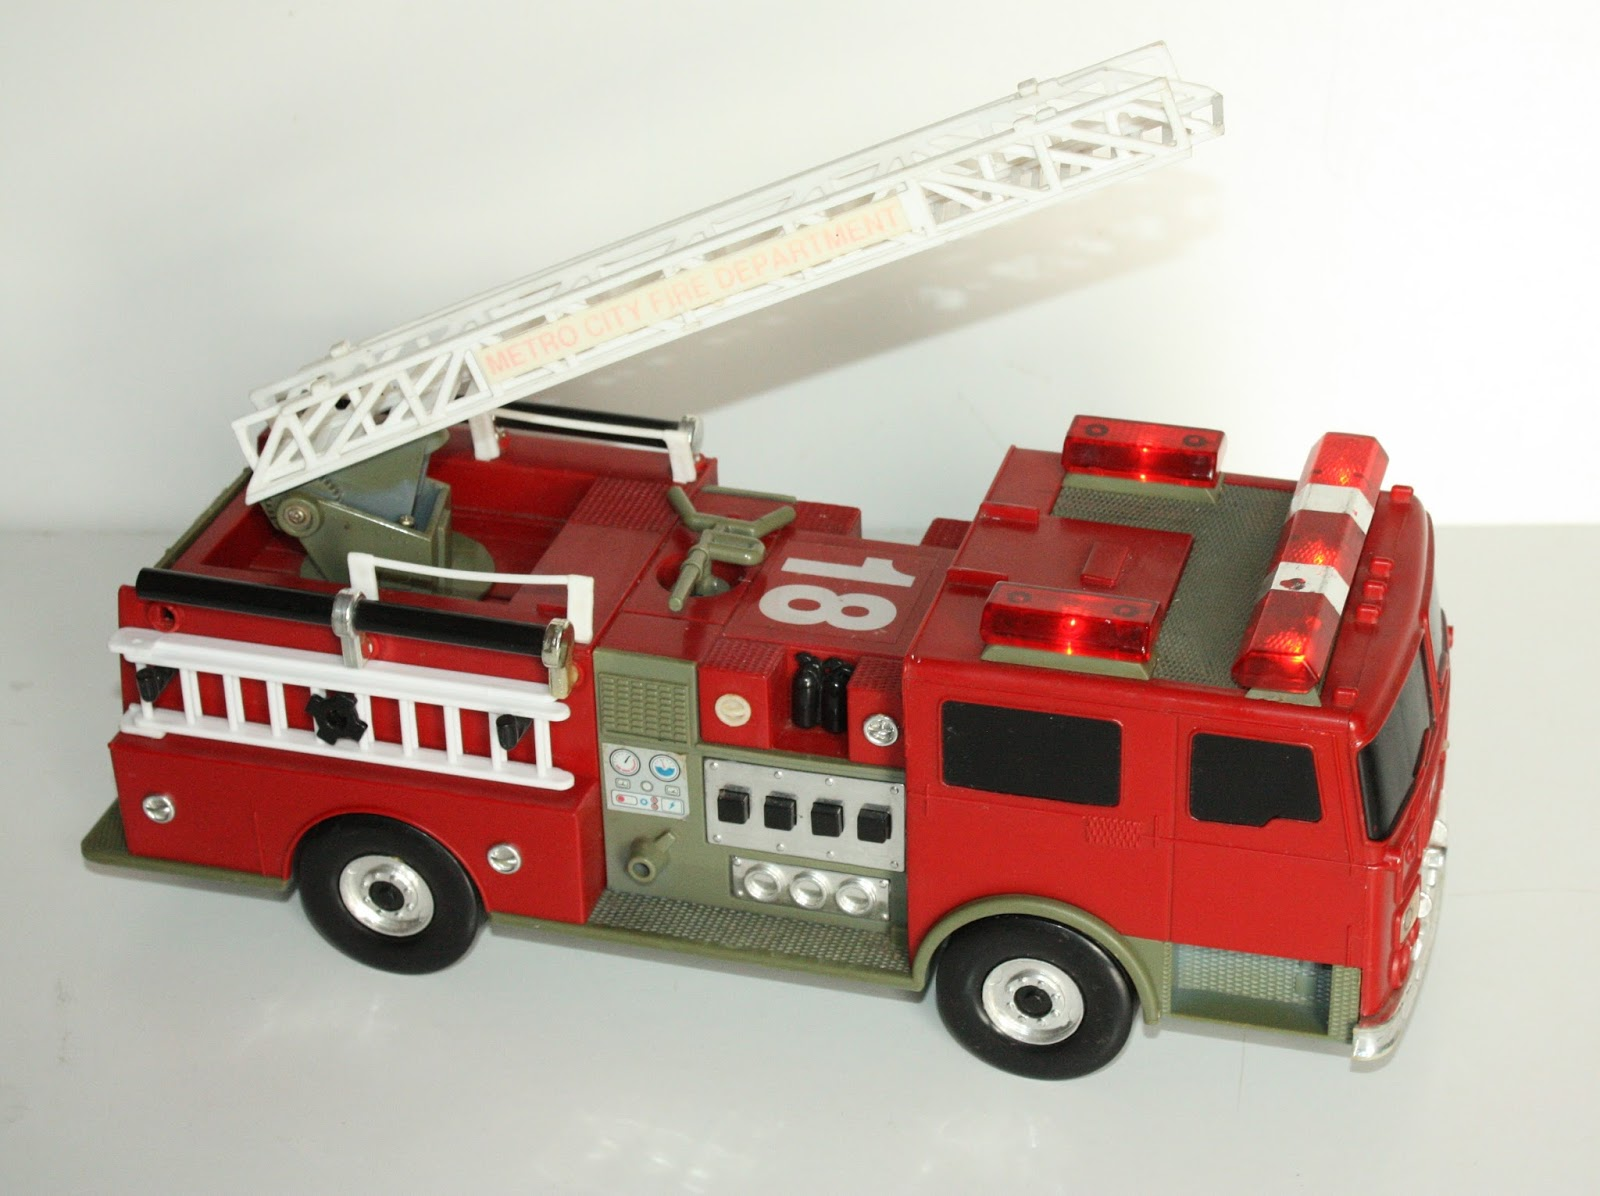 Vintage toy fire trucks apologise, but